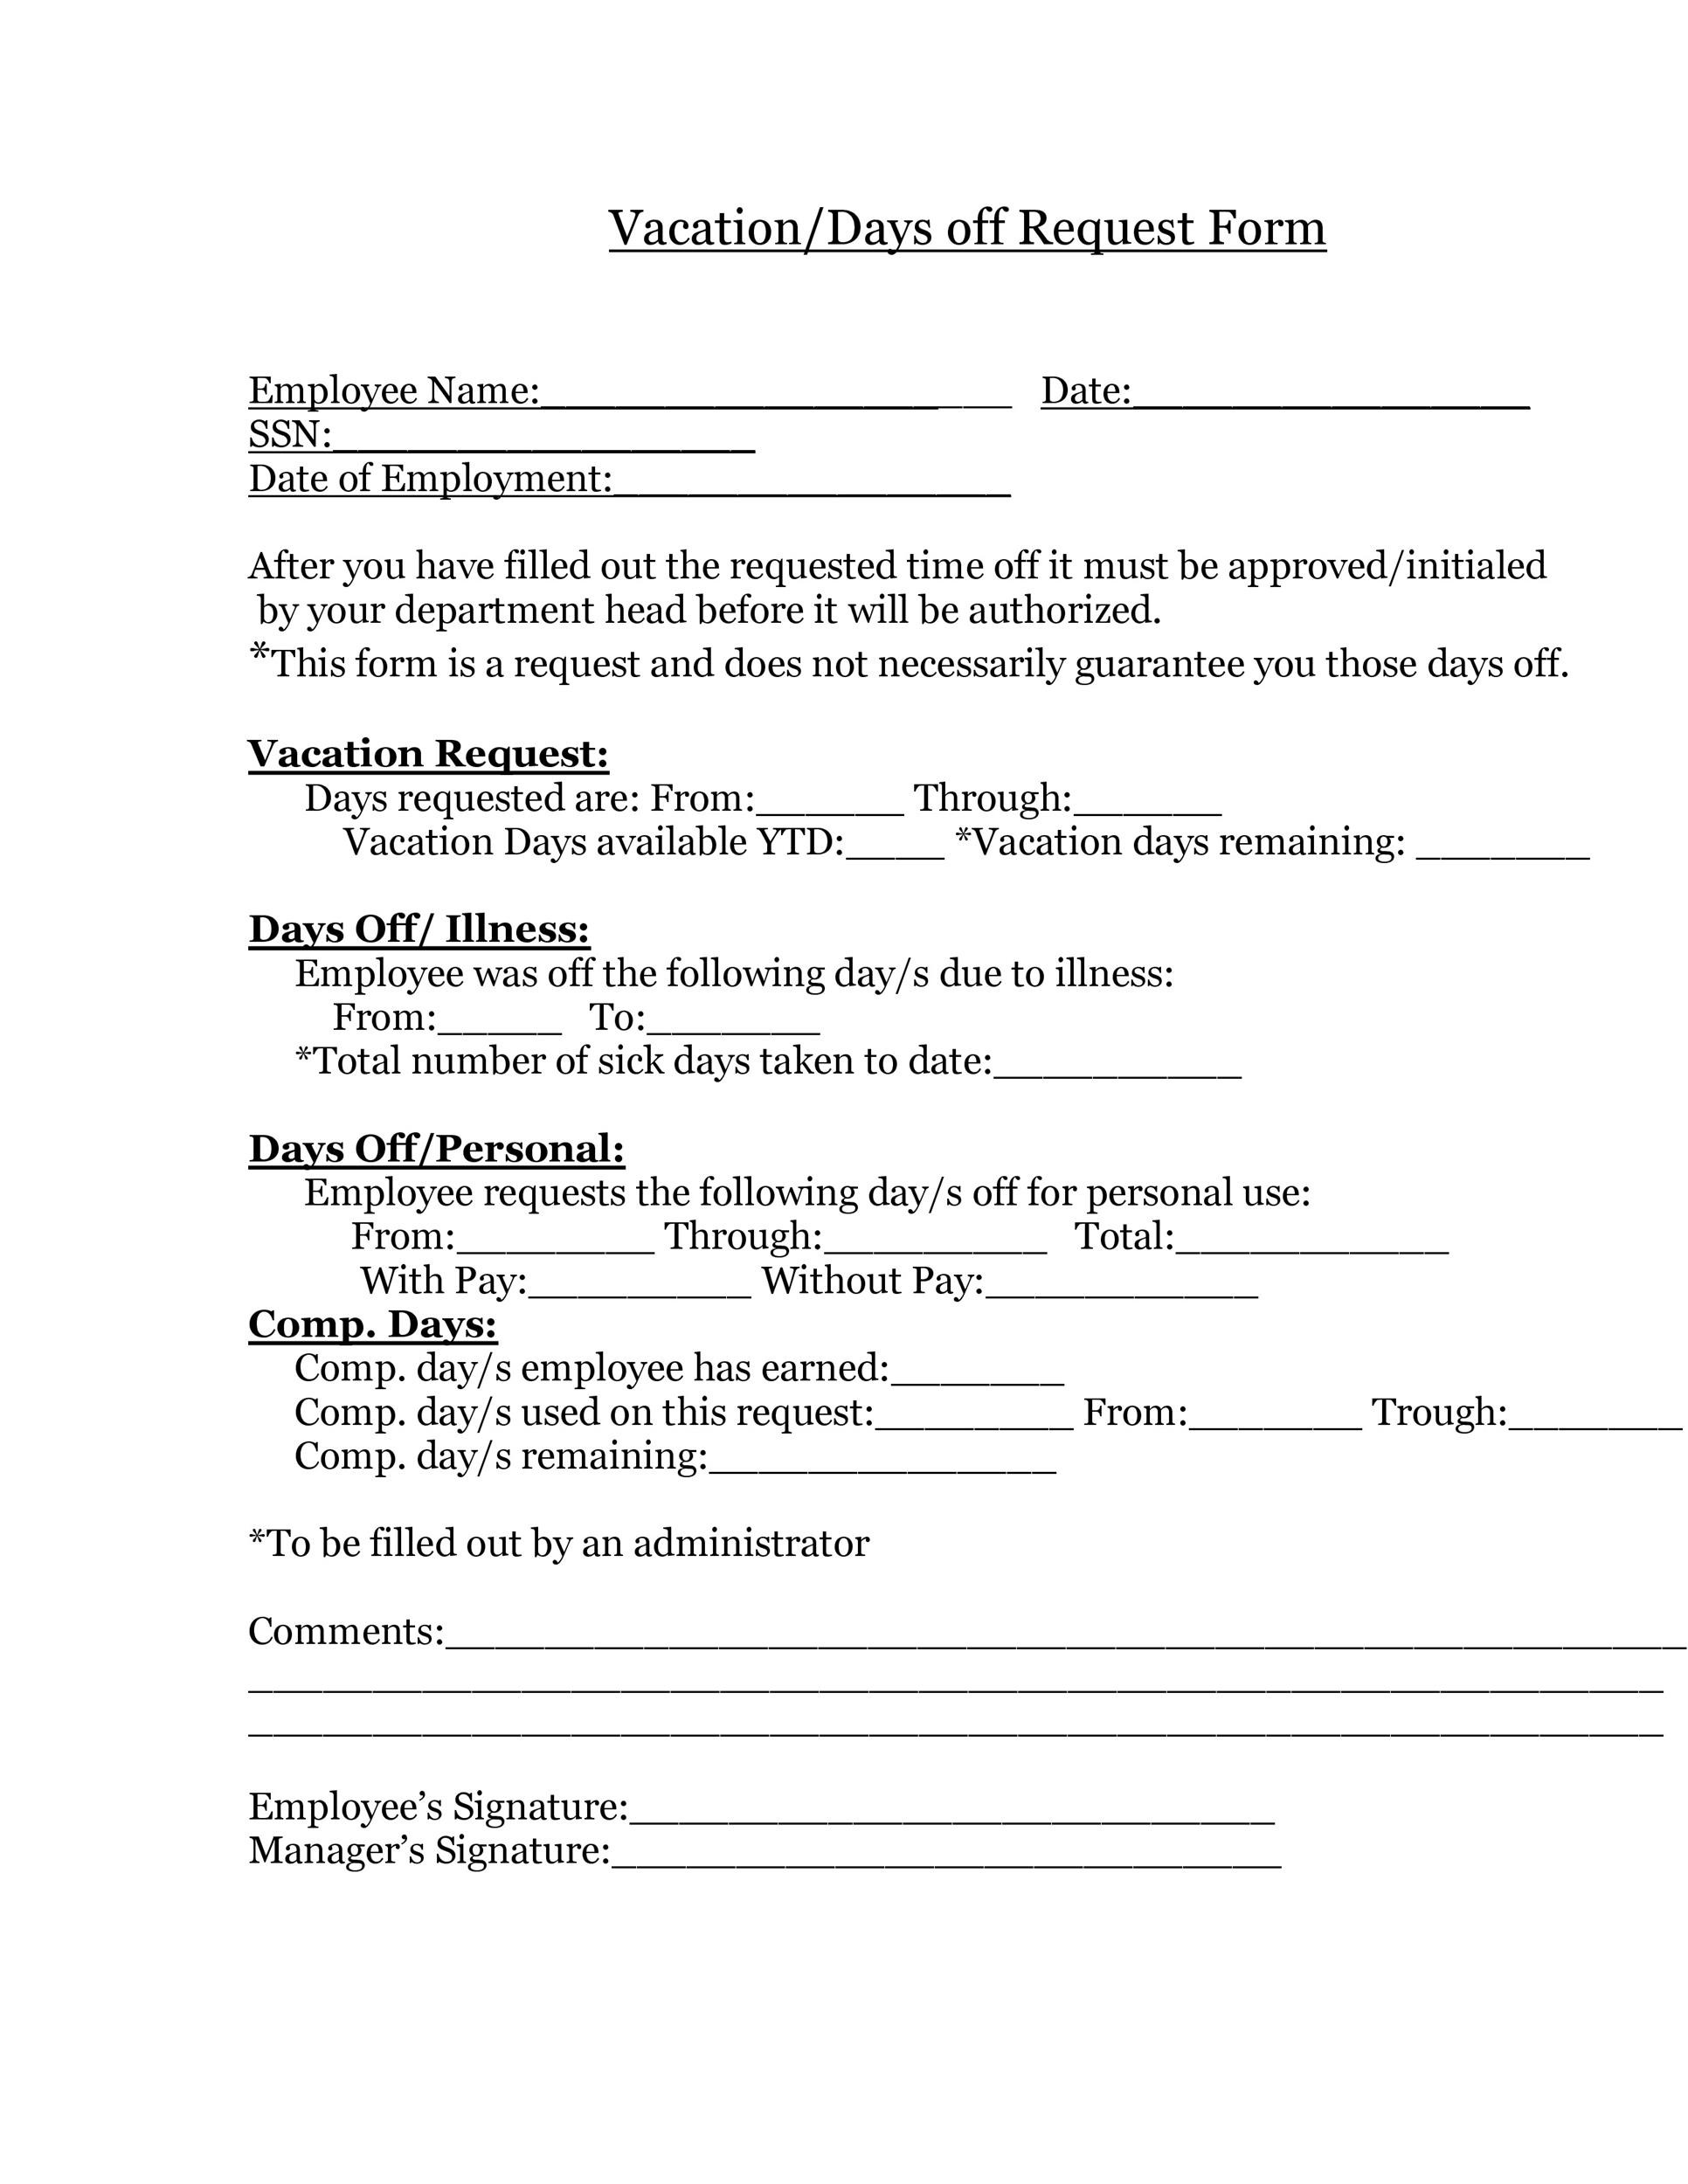 Free vacation request form 26